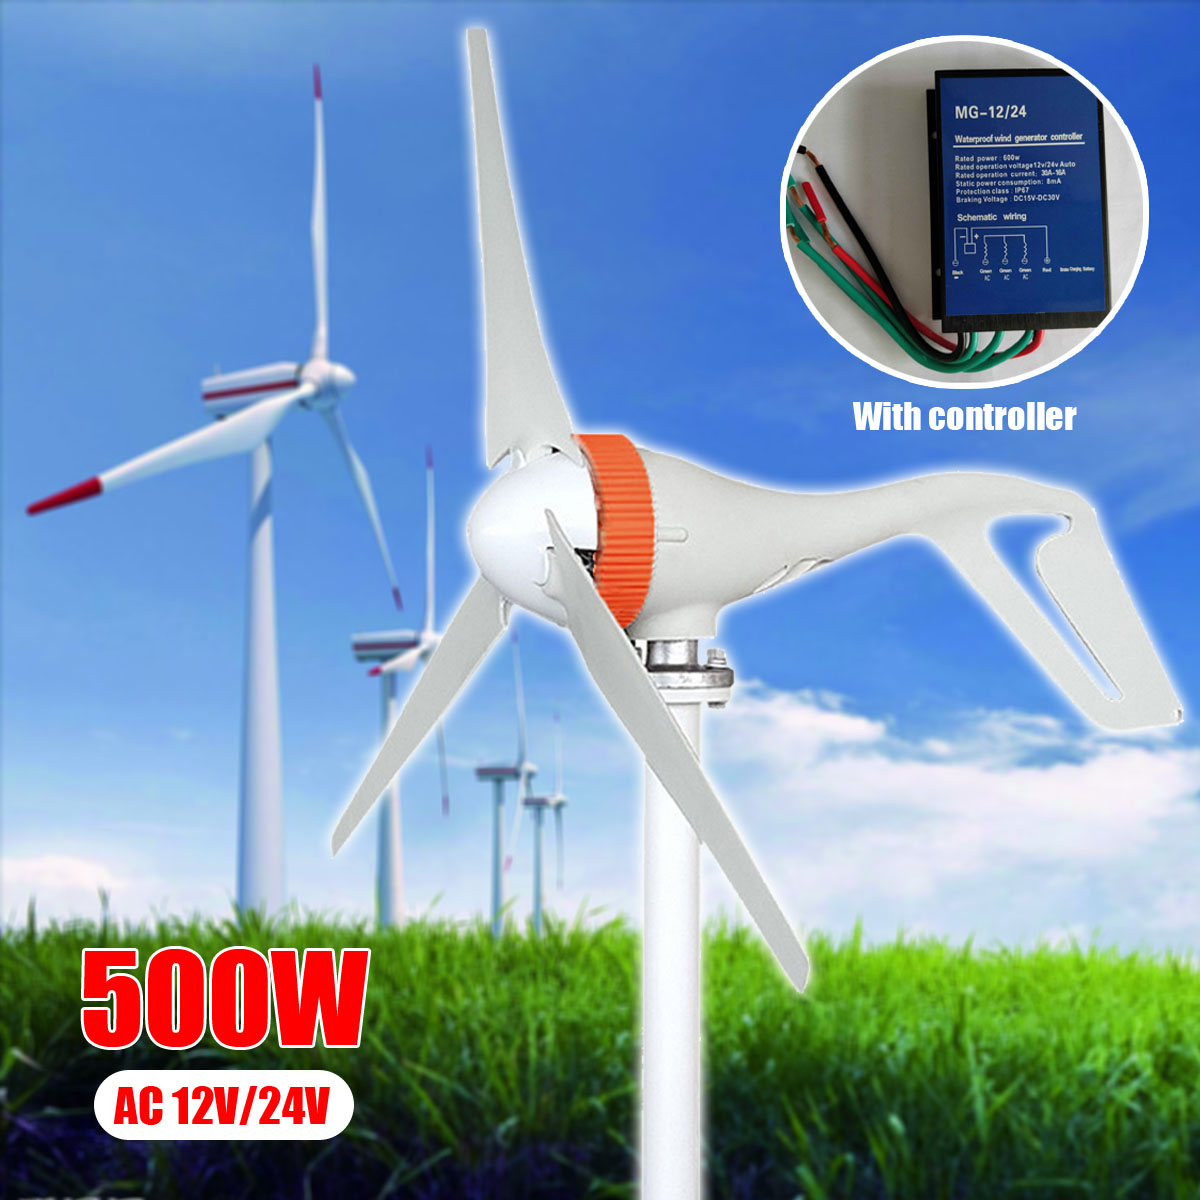 AC 12V/24V 500W Miniature Wind Turbines Generator Mini Wind Turbines With Controller 3 Blades Wind Generator for Home Use